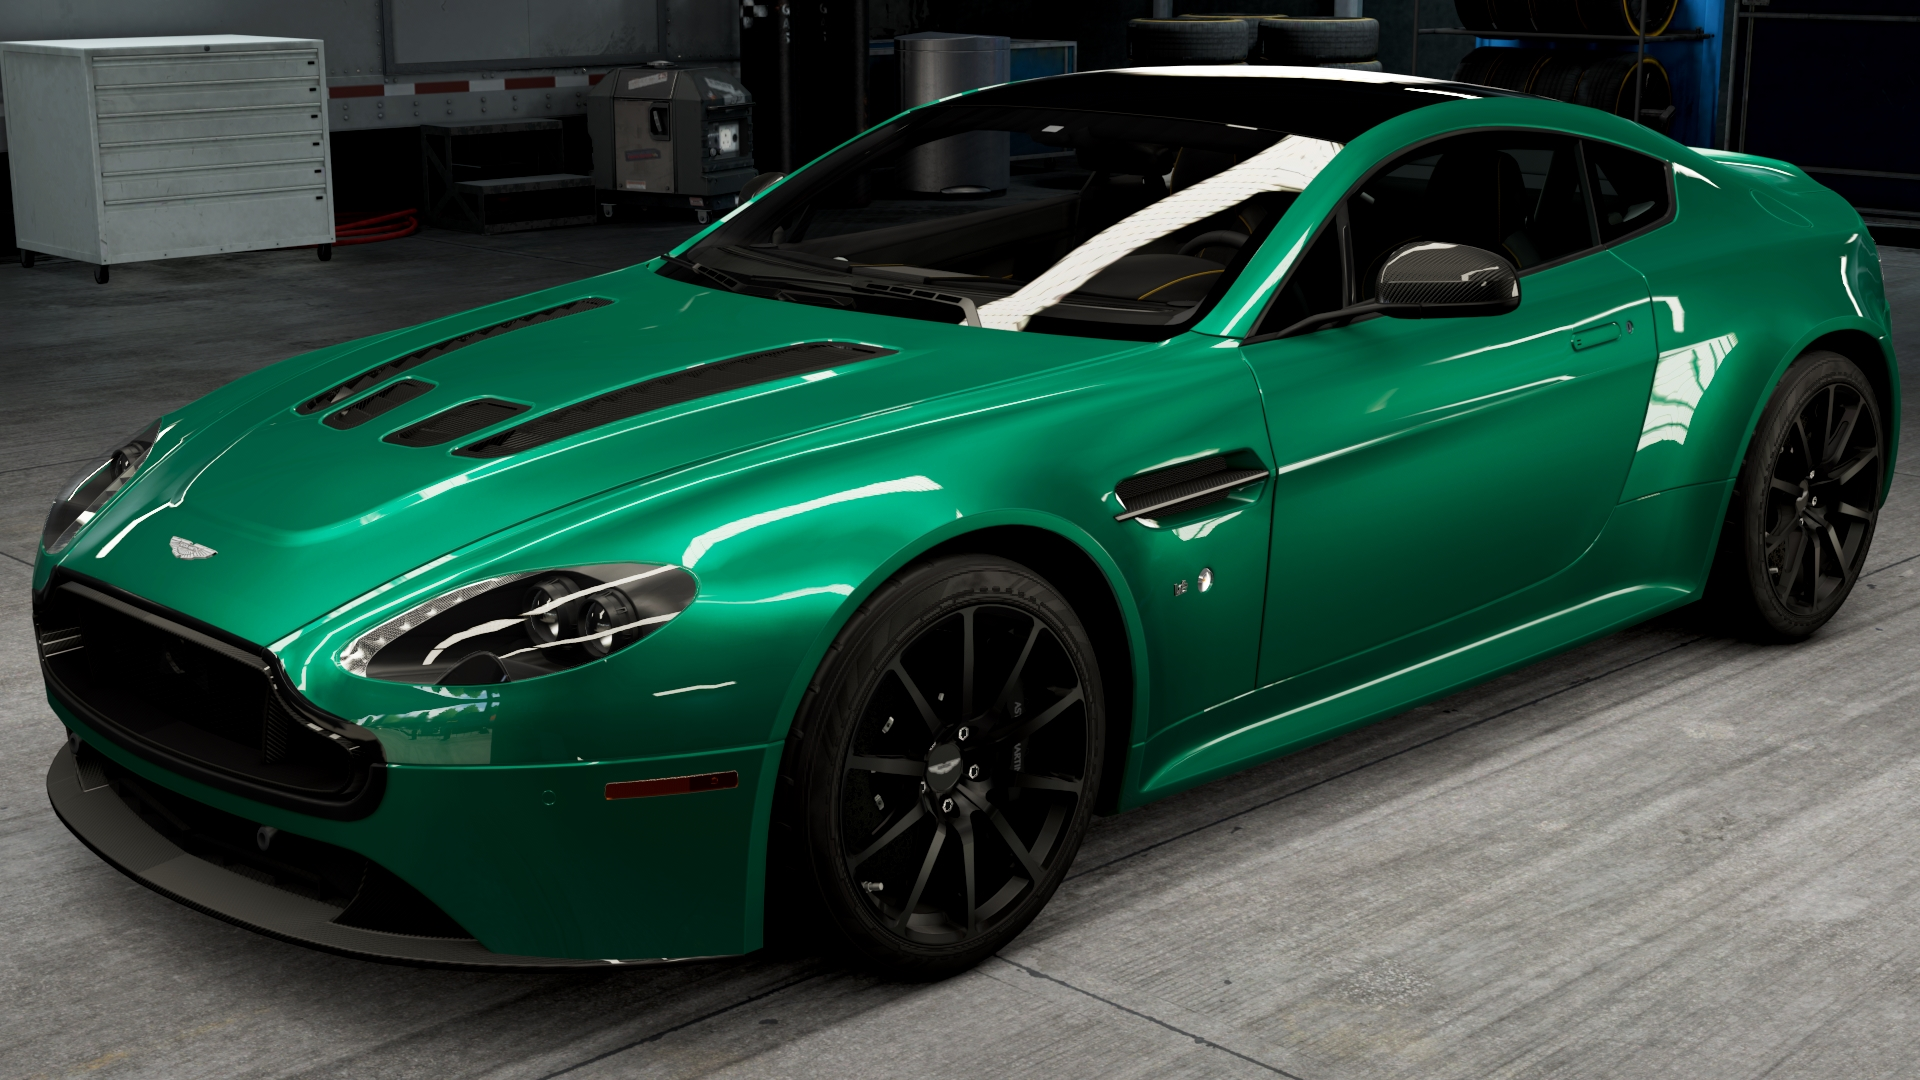 aston martin v12 vantage s forza motorsport wiki fandom powered by wikia. Black Bedroom Furniture Sets. Home Design Ideas